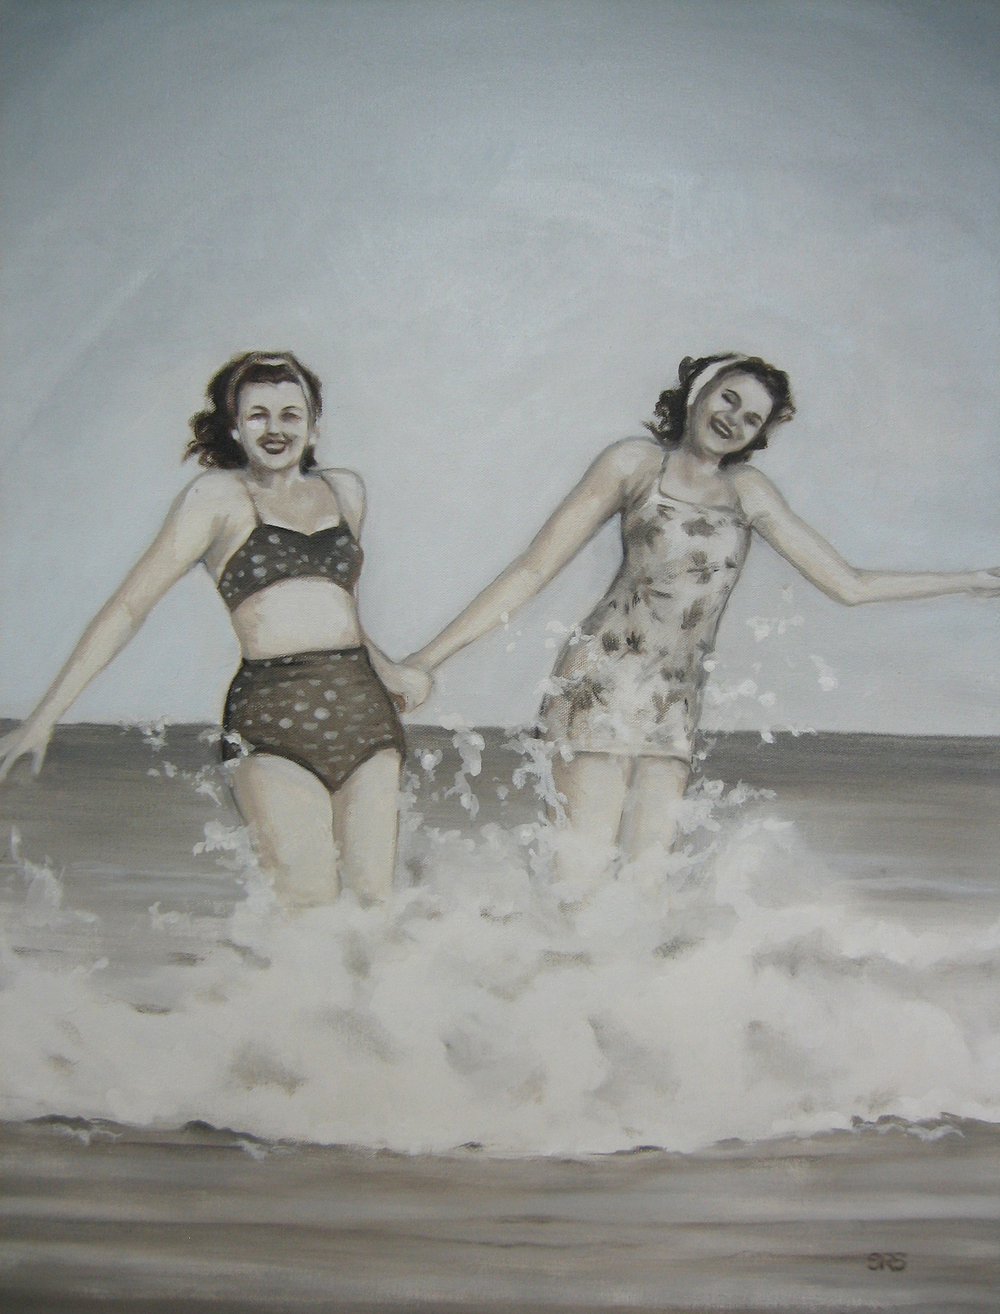 Ladies Splashing, 2016